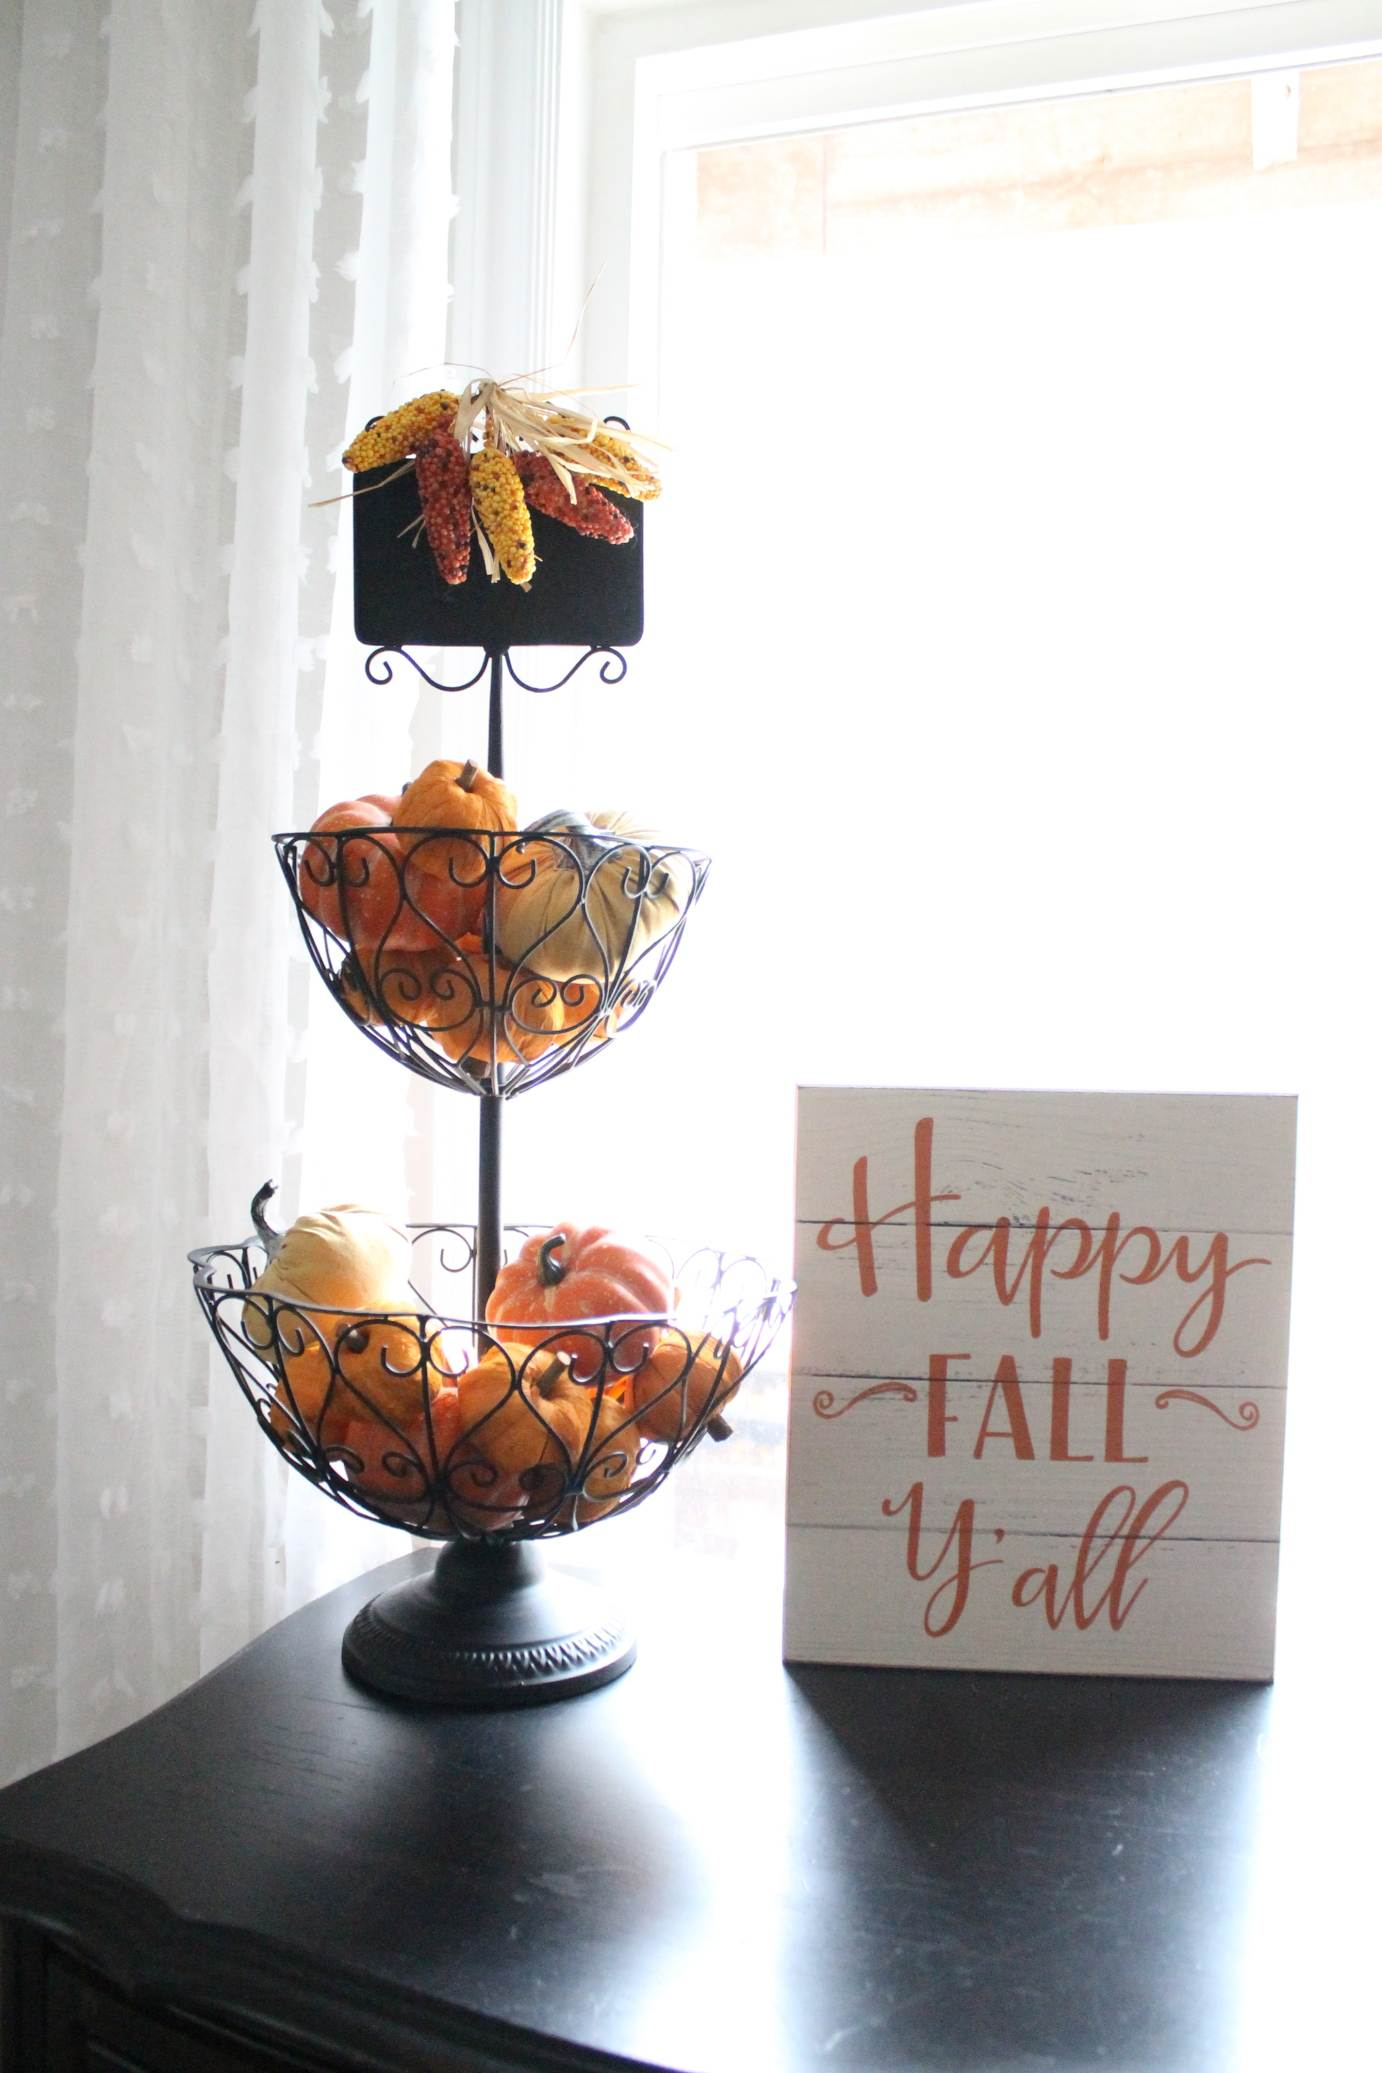 Here is my fall home tour! Black and white buffalo check, creams, whites, and robin's egg blue in the living room. Orange and yellow for my sitting room hutch, and deep wine, burgundy, gold, and pinks for my kitchen.